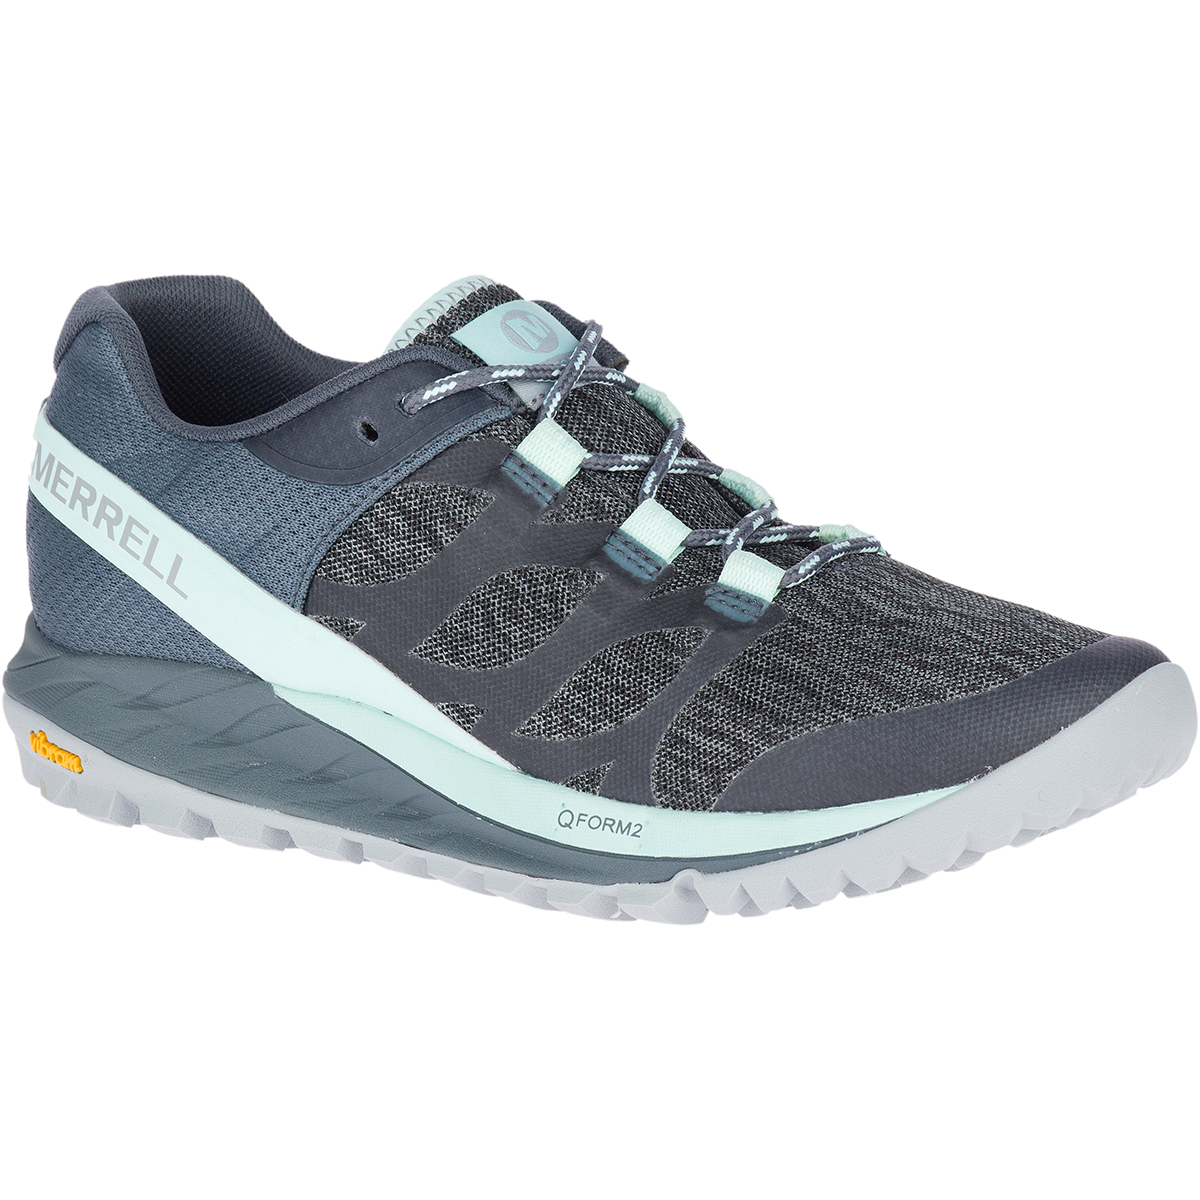 Merrell Women's Antora Trail Running Shoes - Blue, 6